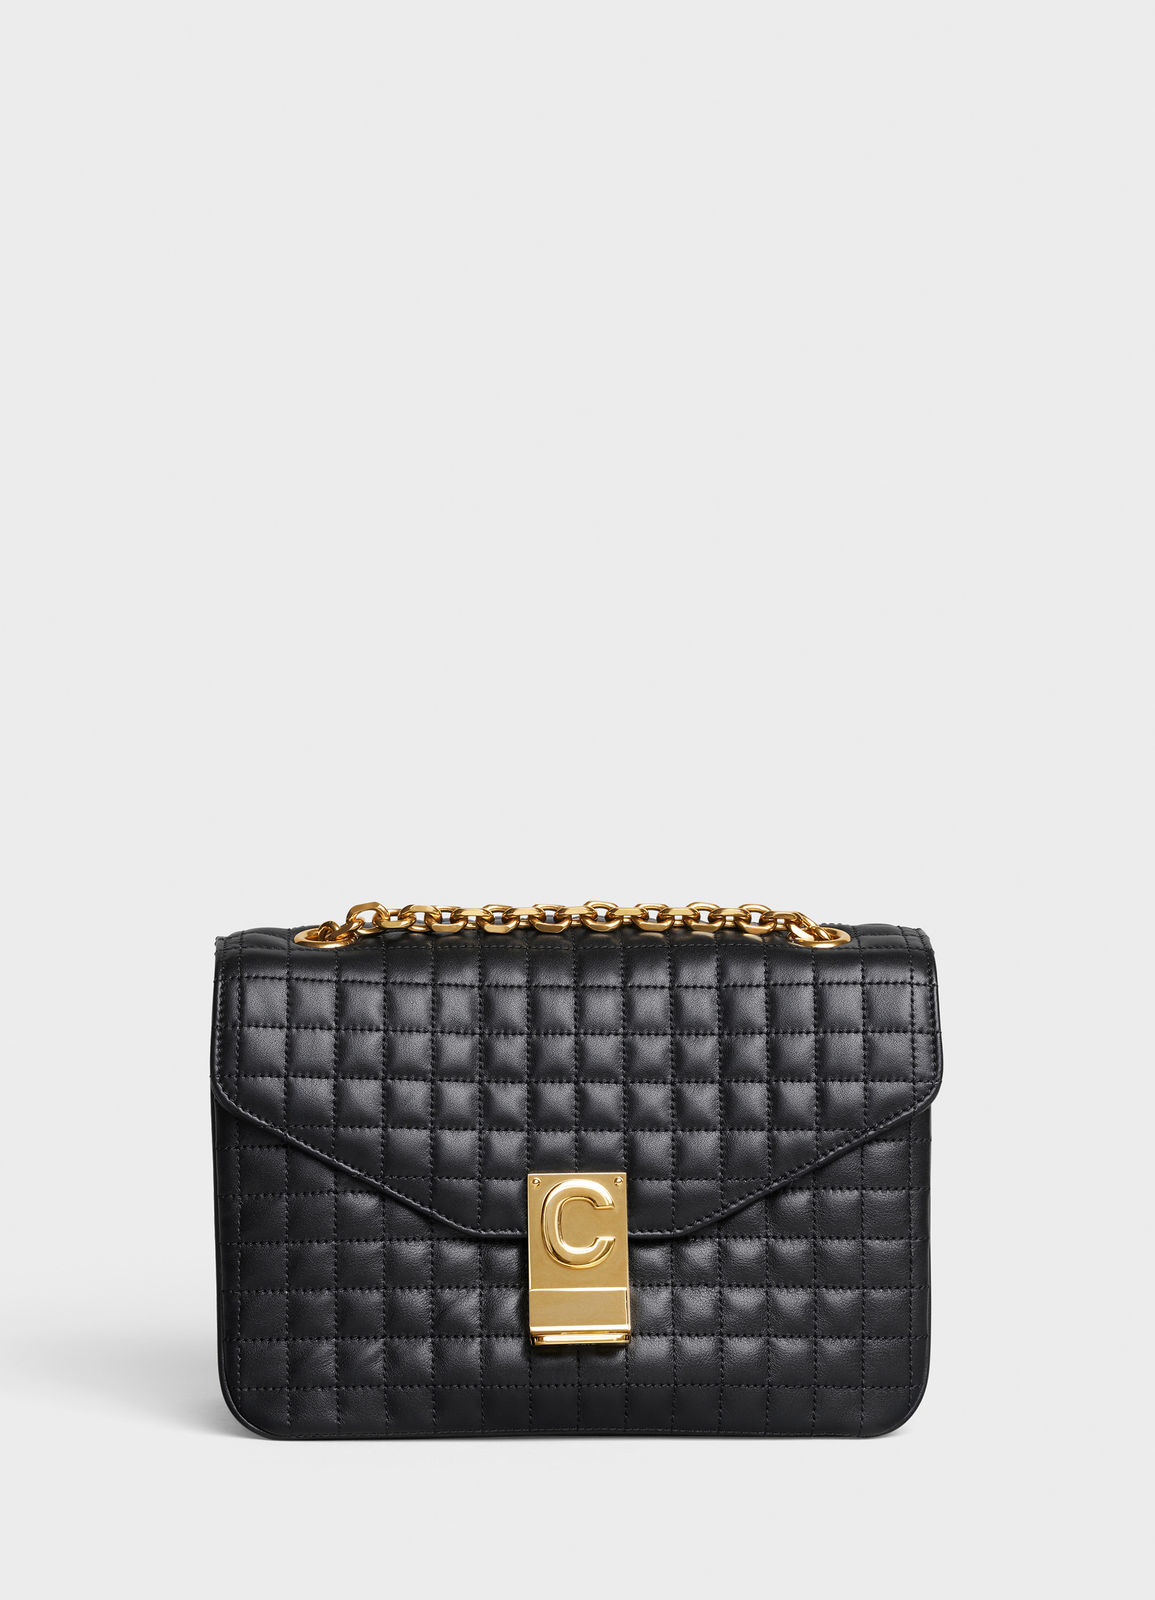 CELINE MEDIUM C BAG IN BICOLOUR QUILTED CALFSKIN CL87253 black